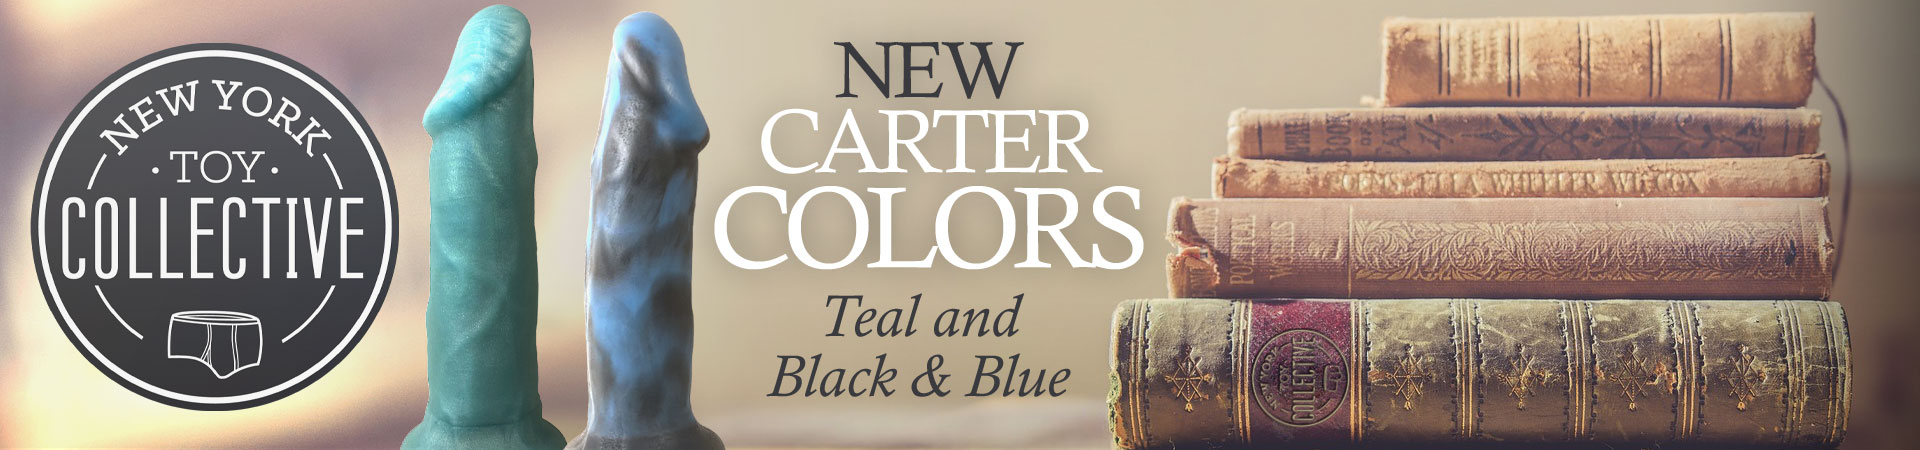 New Carter Colors! Teal And Black & Blue From New York Toy Collective